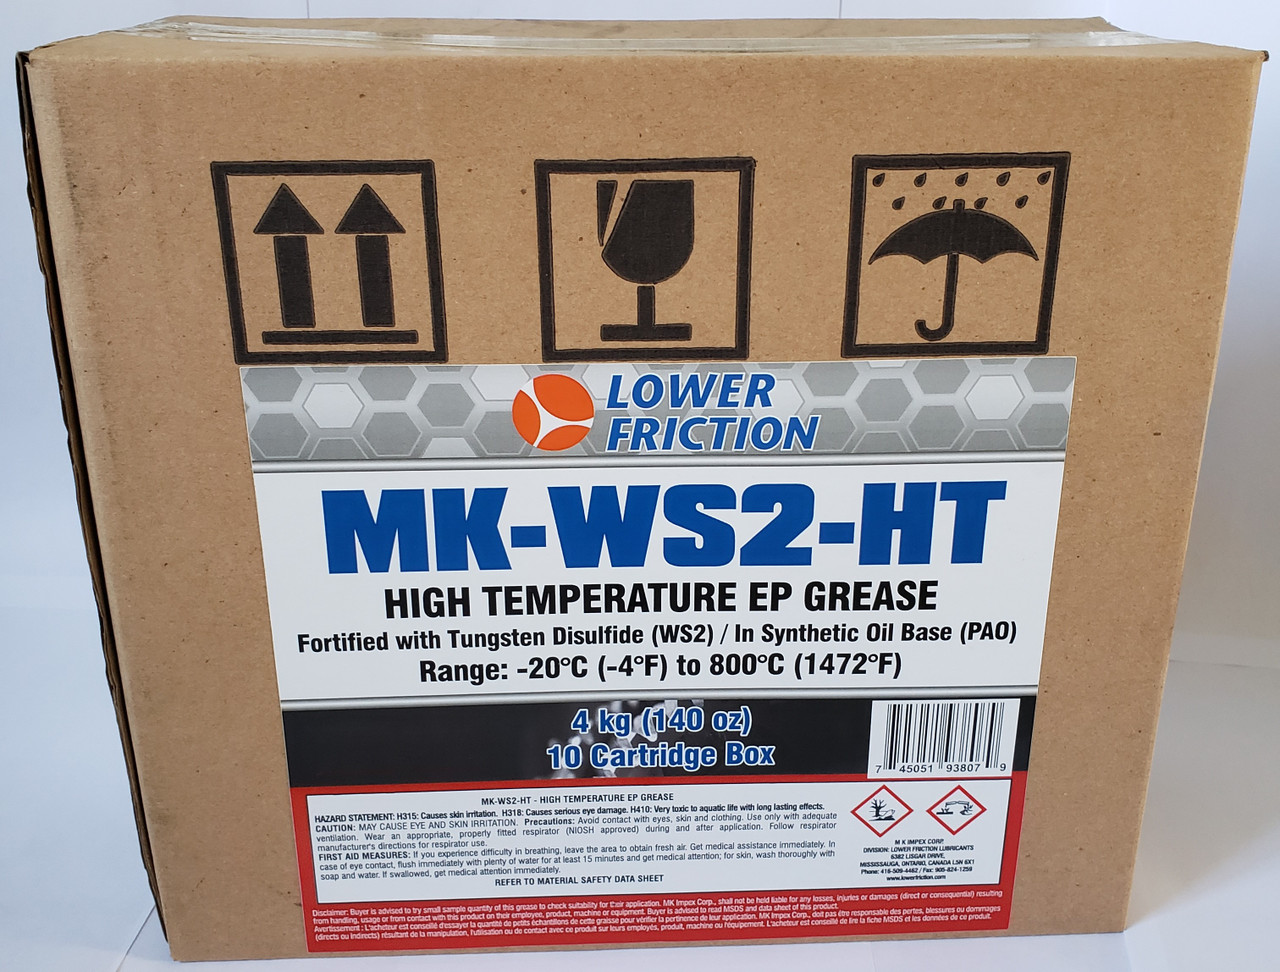 High Temperature EP Grease with WS2, 14 Oz/400 grams Cartridge